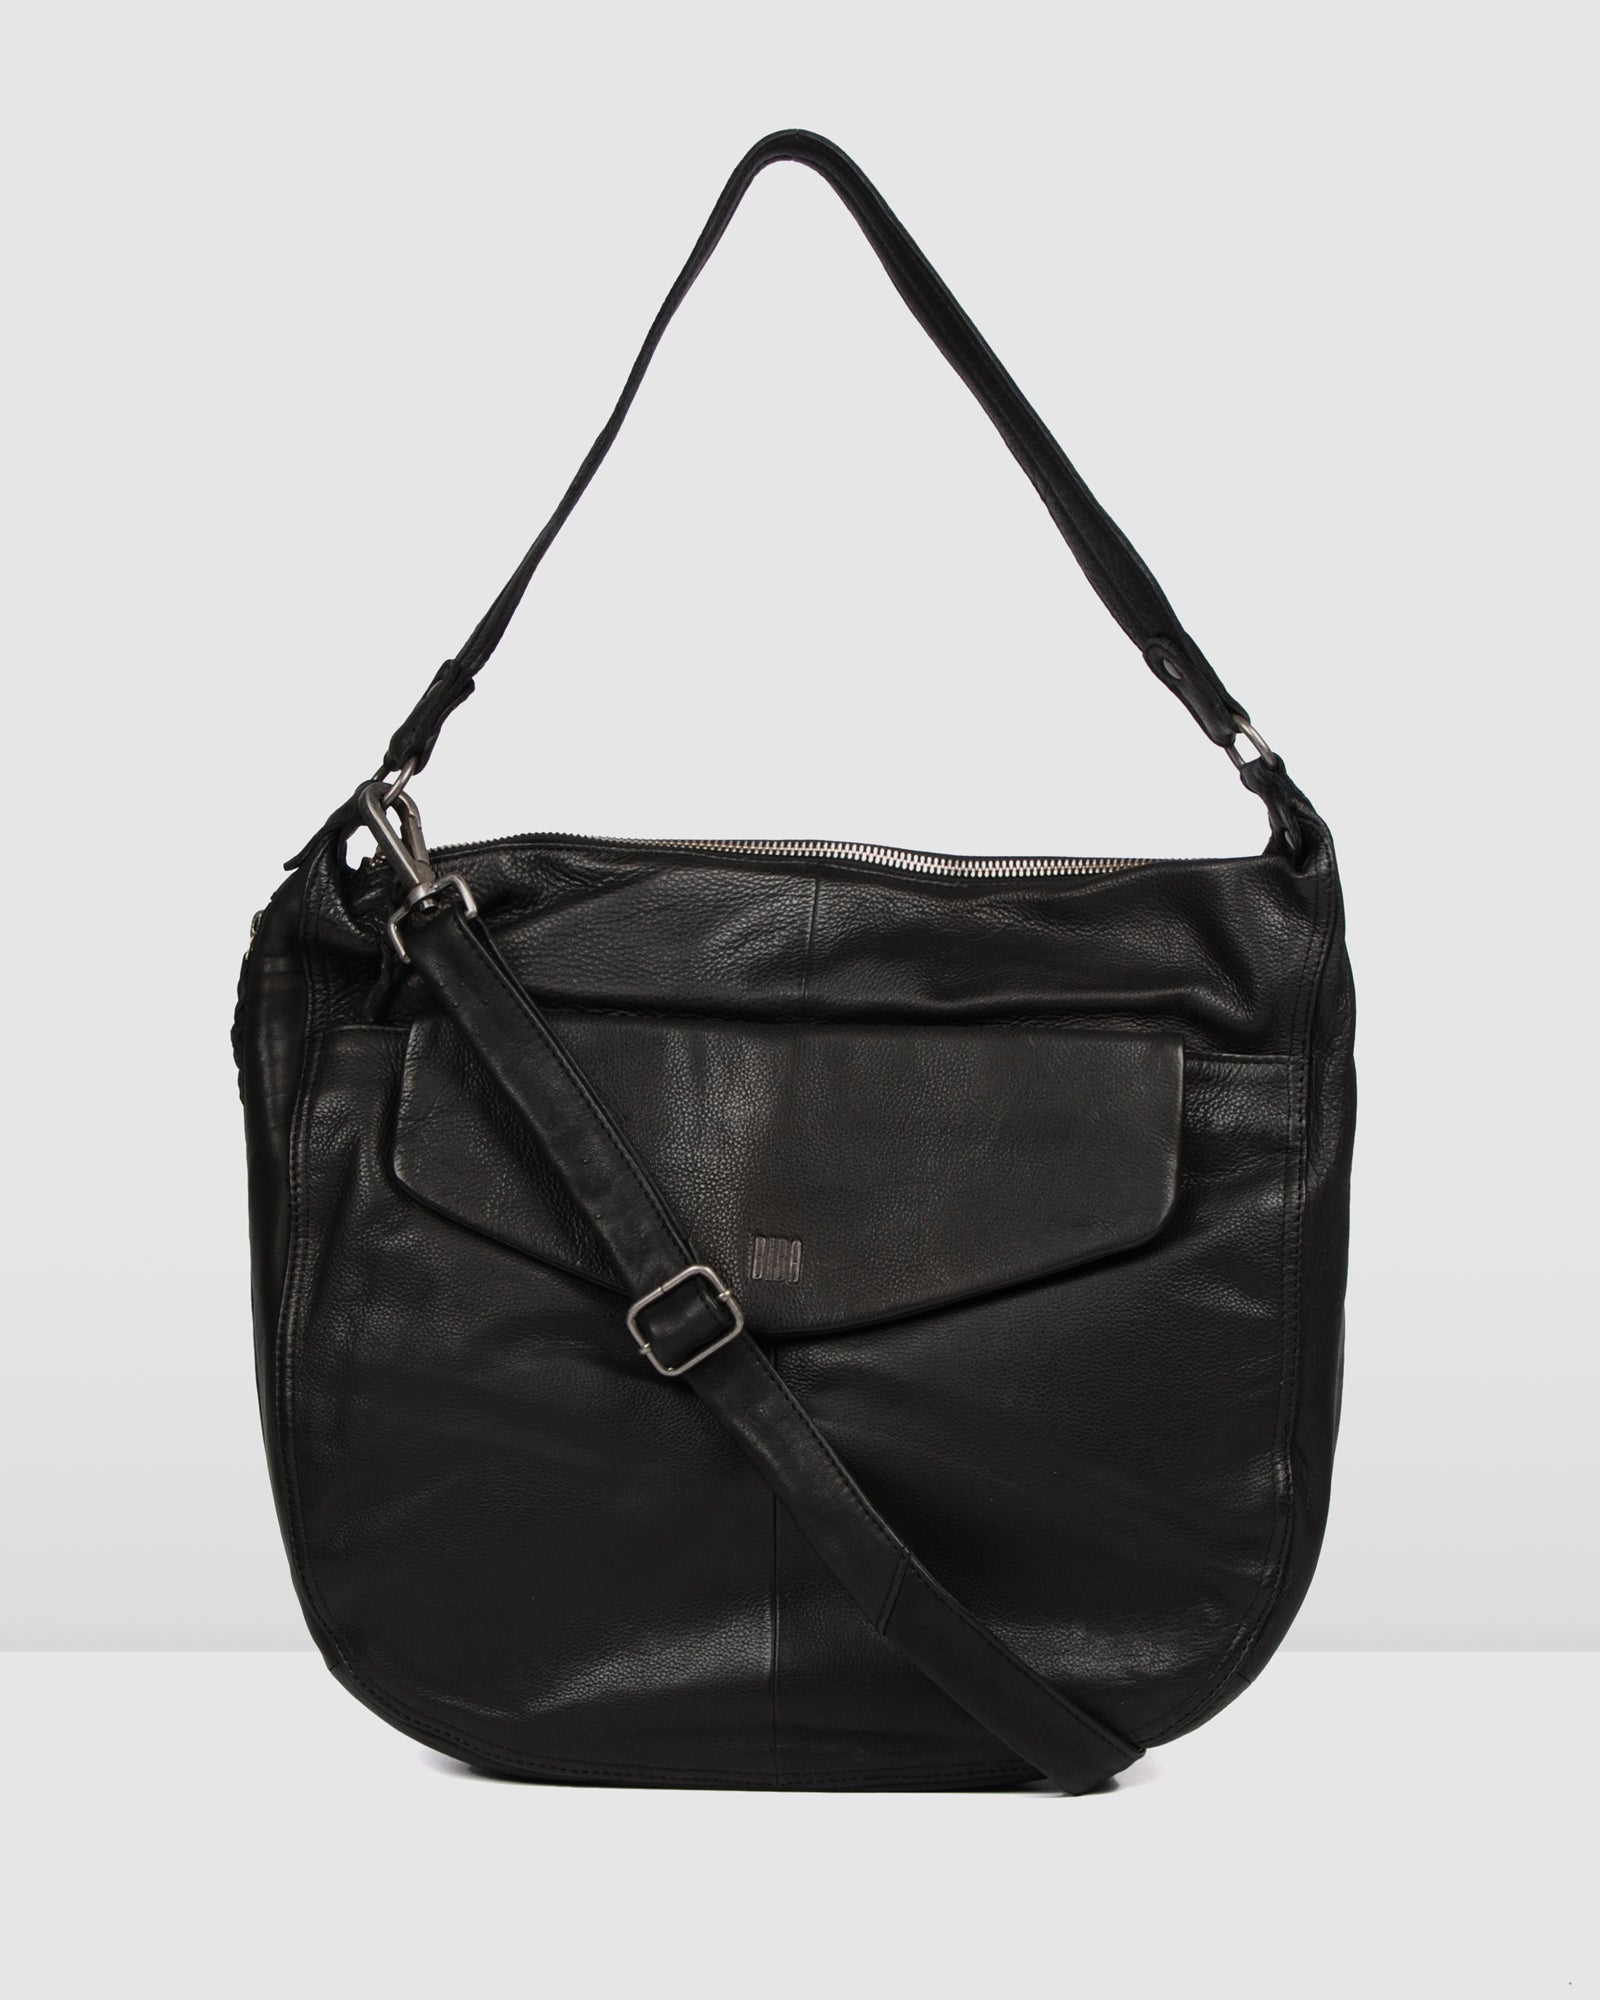 BIBA JERSEY SUMMER SHOULDER BAG BLACK LEATHER